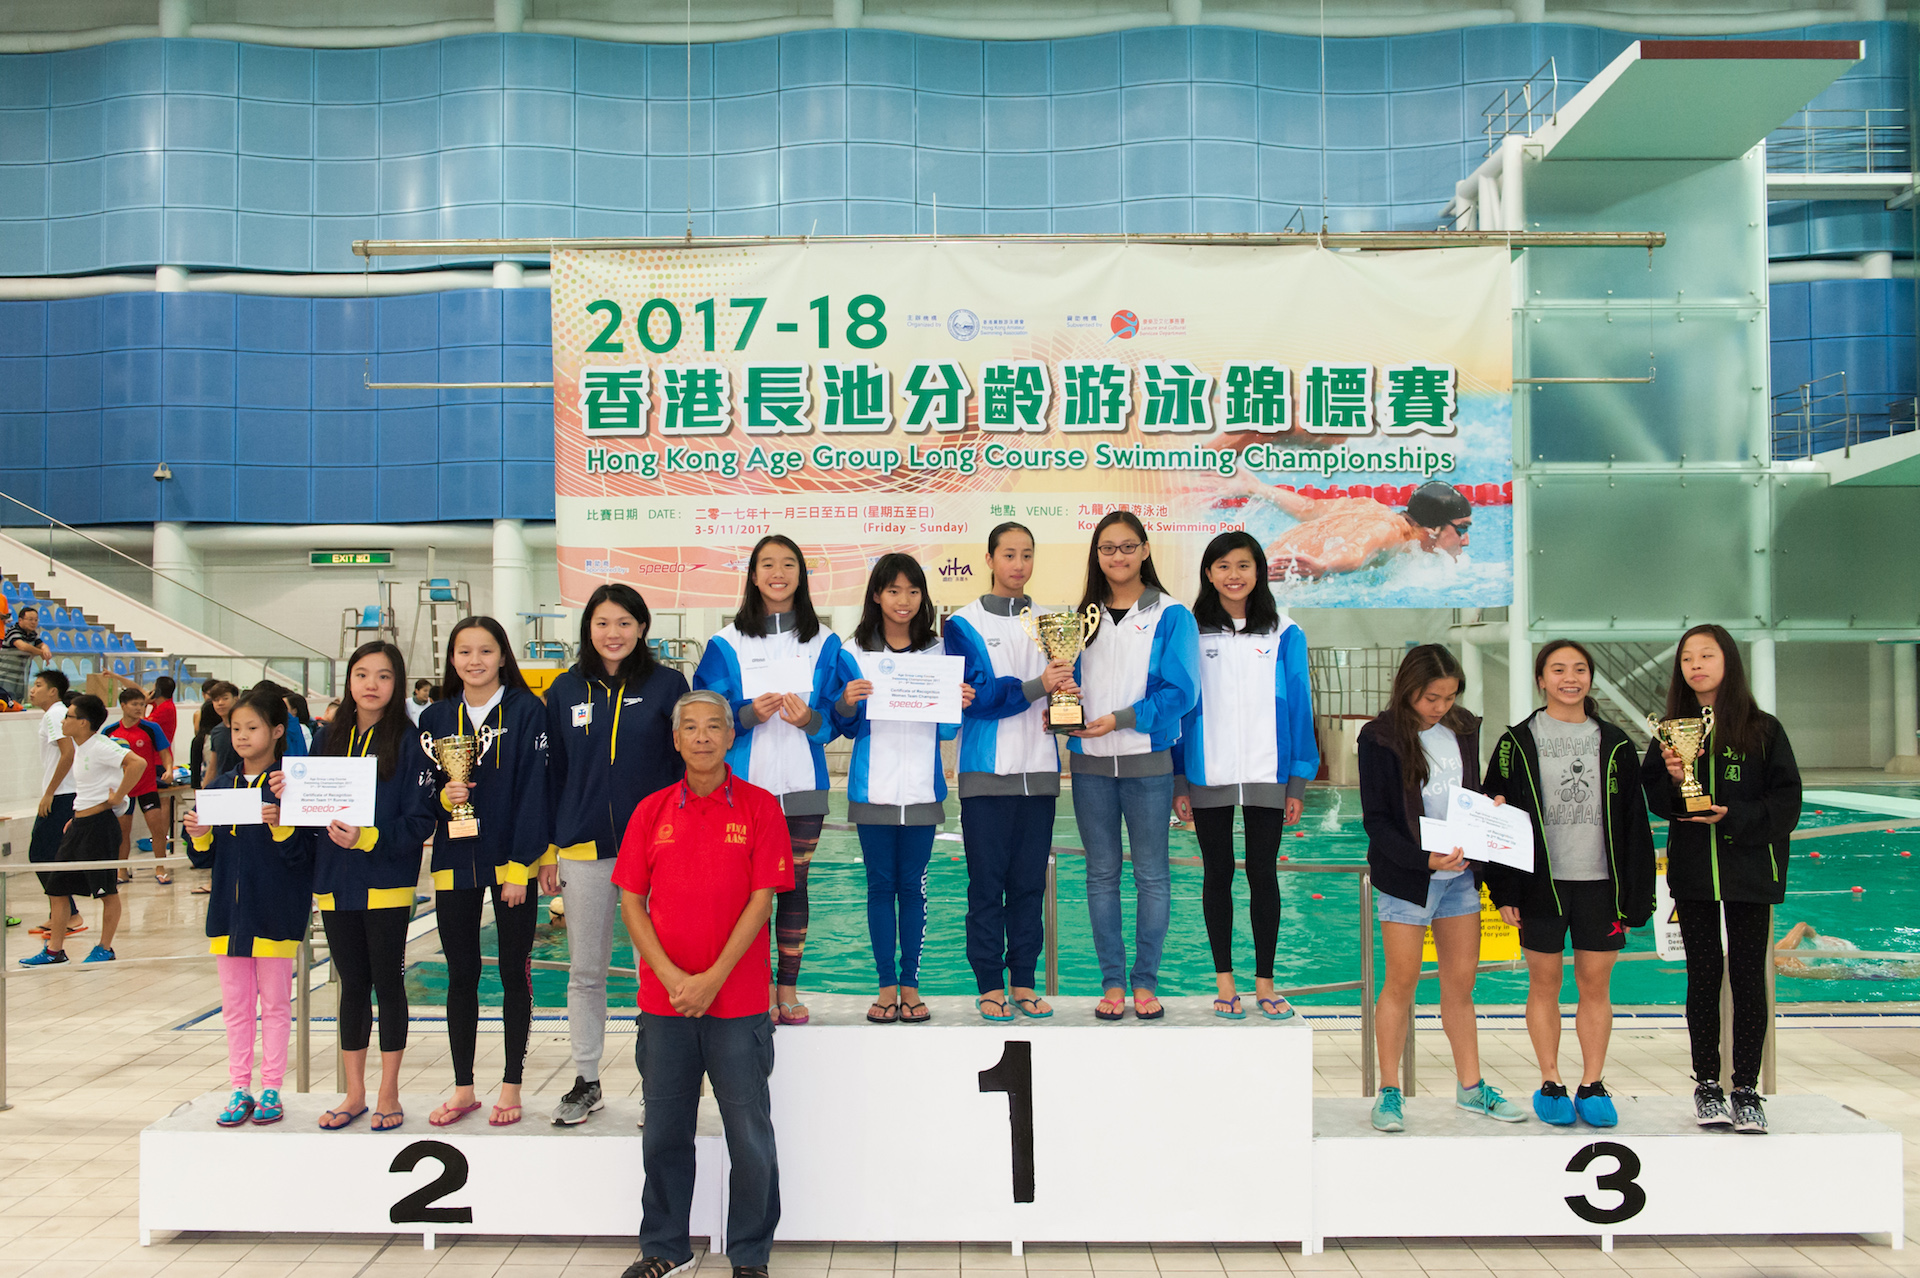 Win Tin Swimming Club - 2017 Long Course Age Group Championships 6